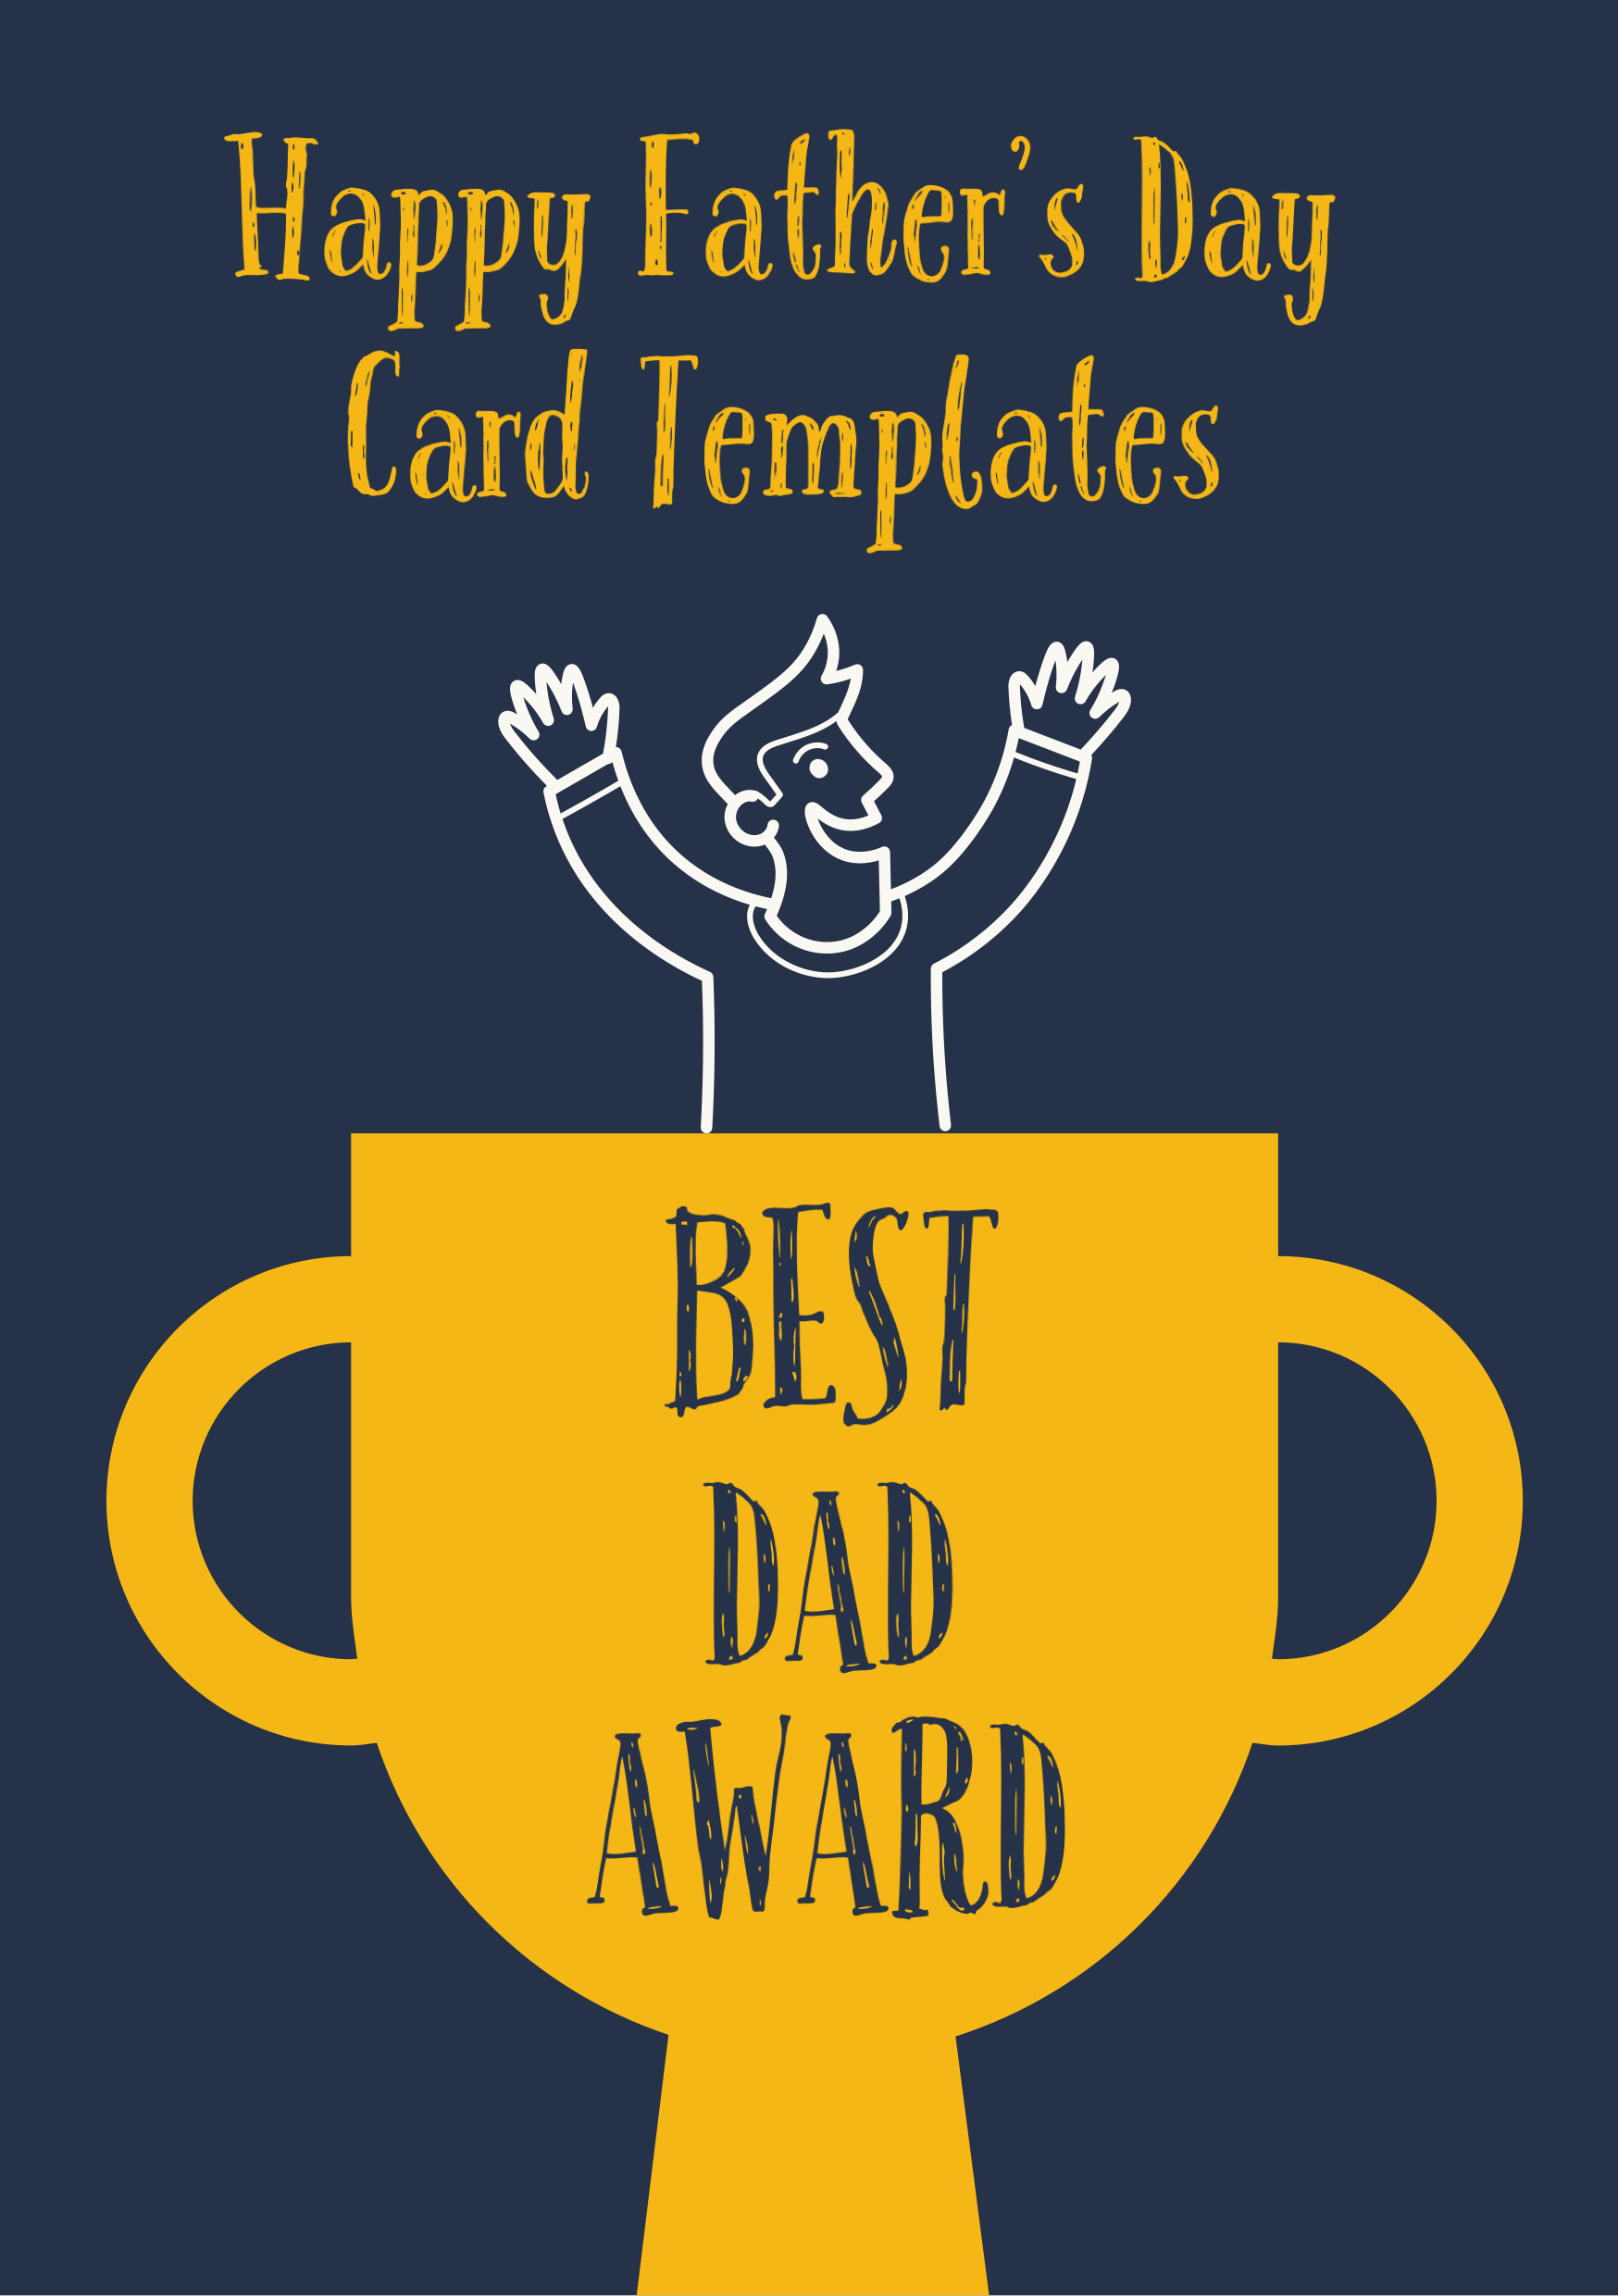 Father S Day Card Ideas Father S Day Card Template Custom Cards Invitation Card Design